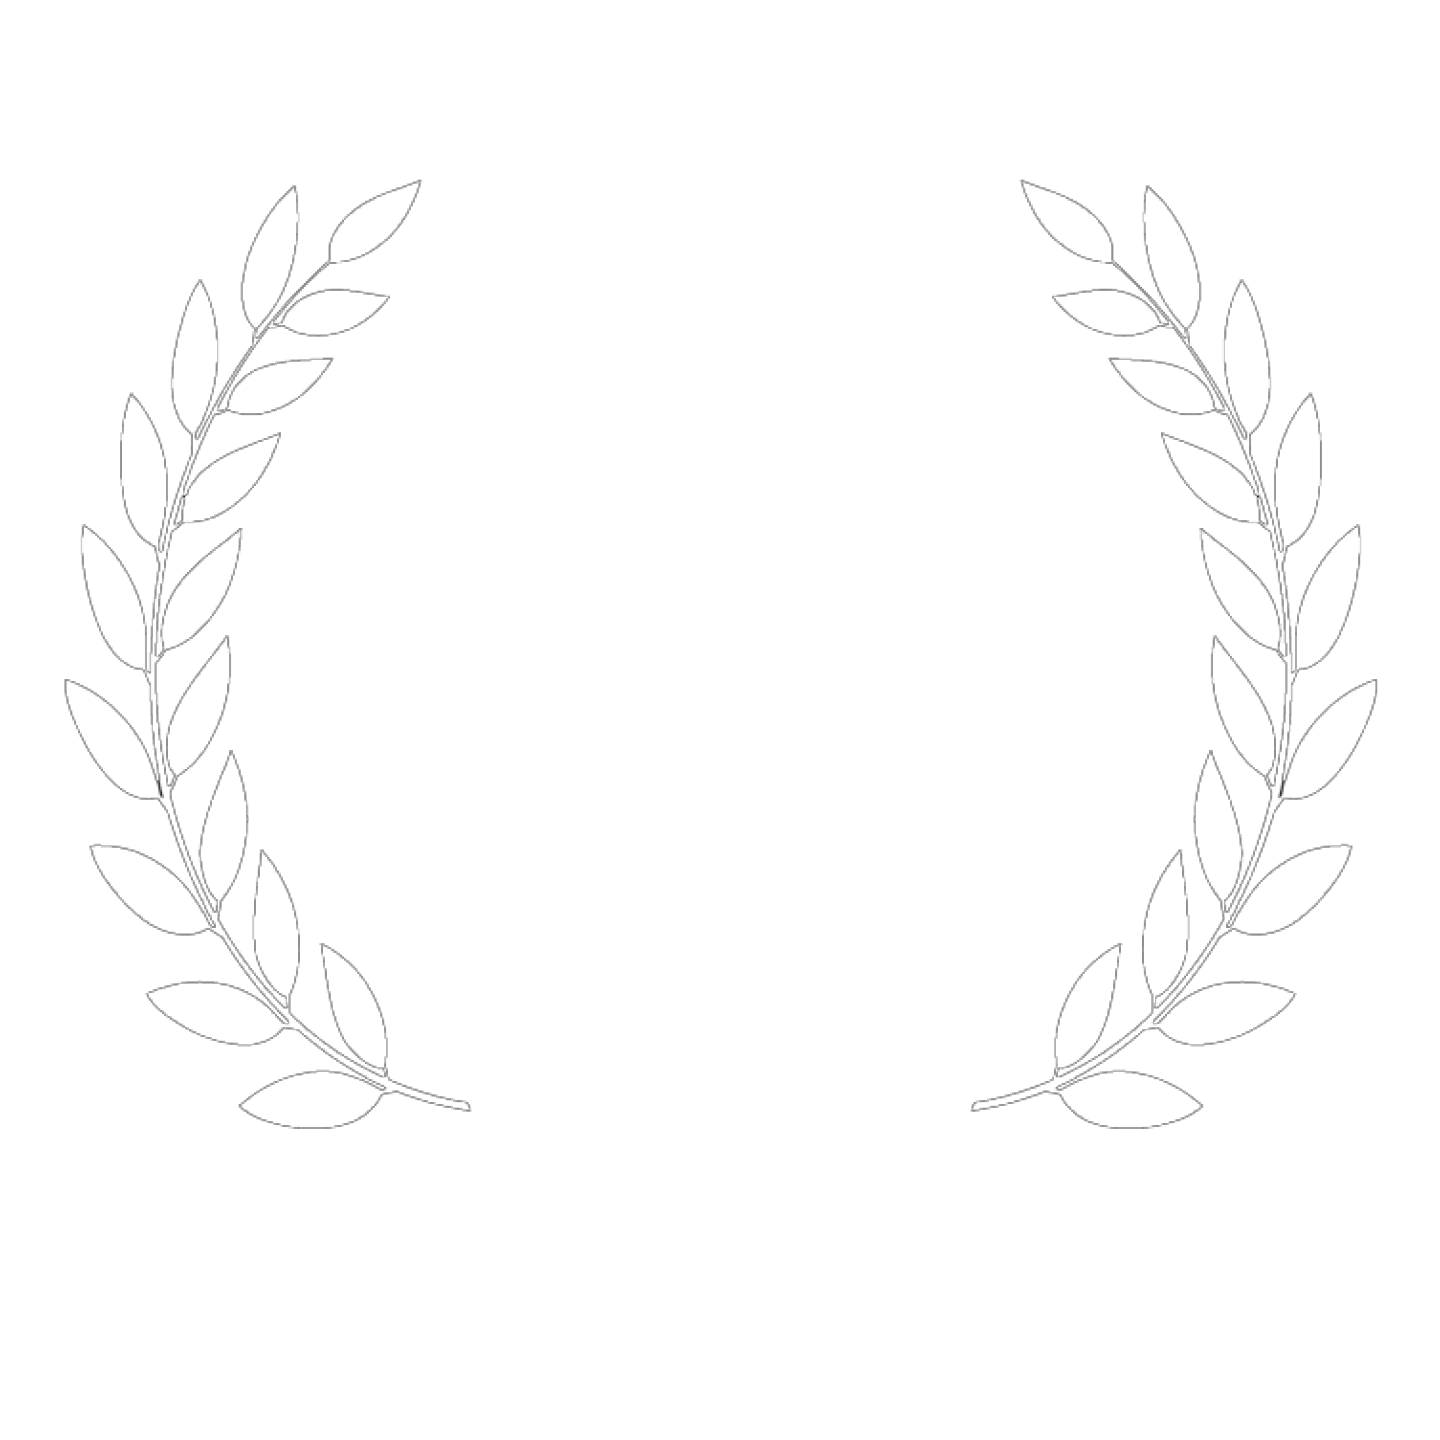 Brighton Fringe Award for Excellence